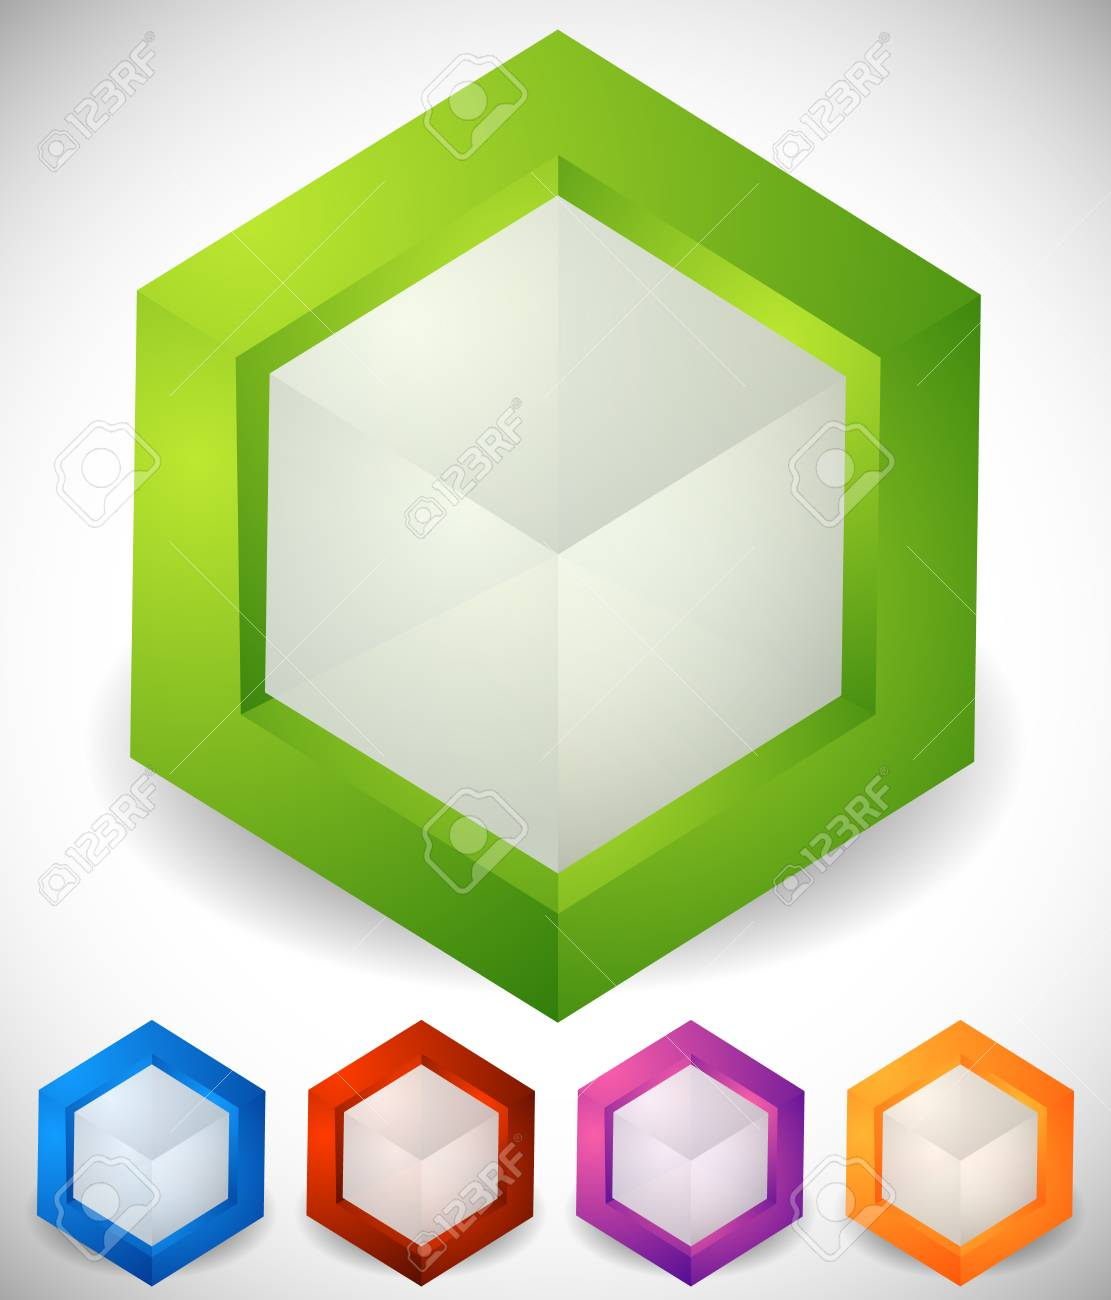 Abstract Isometric Cube Icons  Generic, Modern Vector Icons